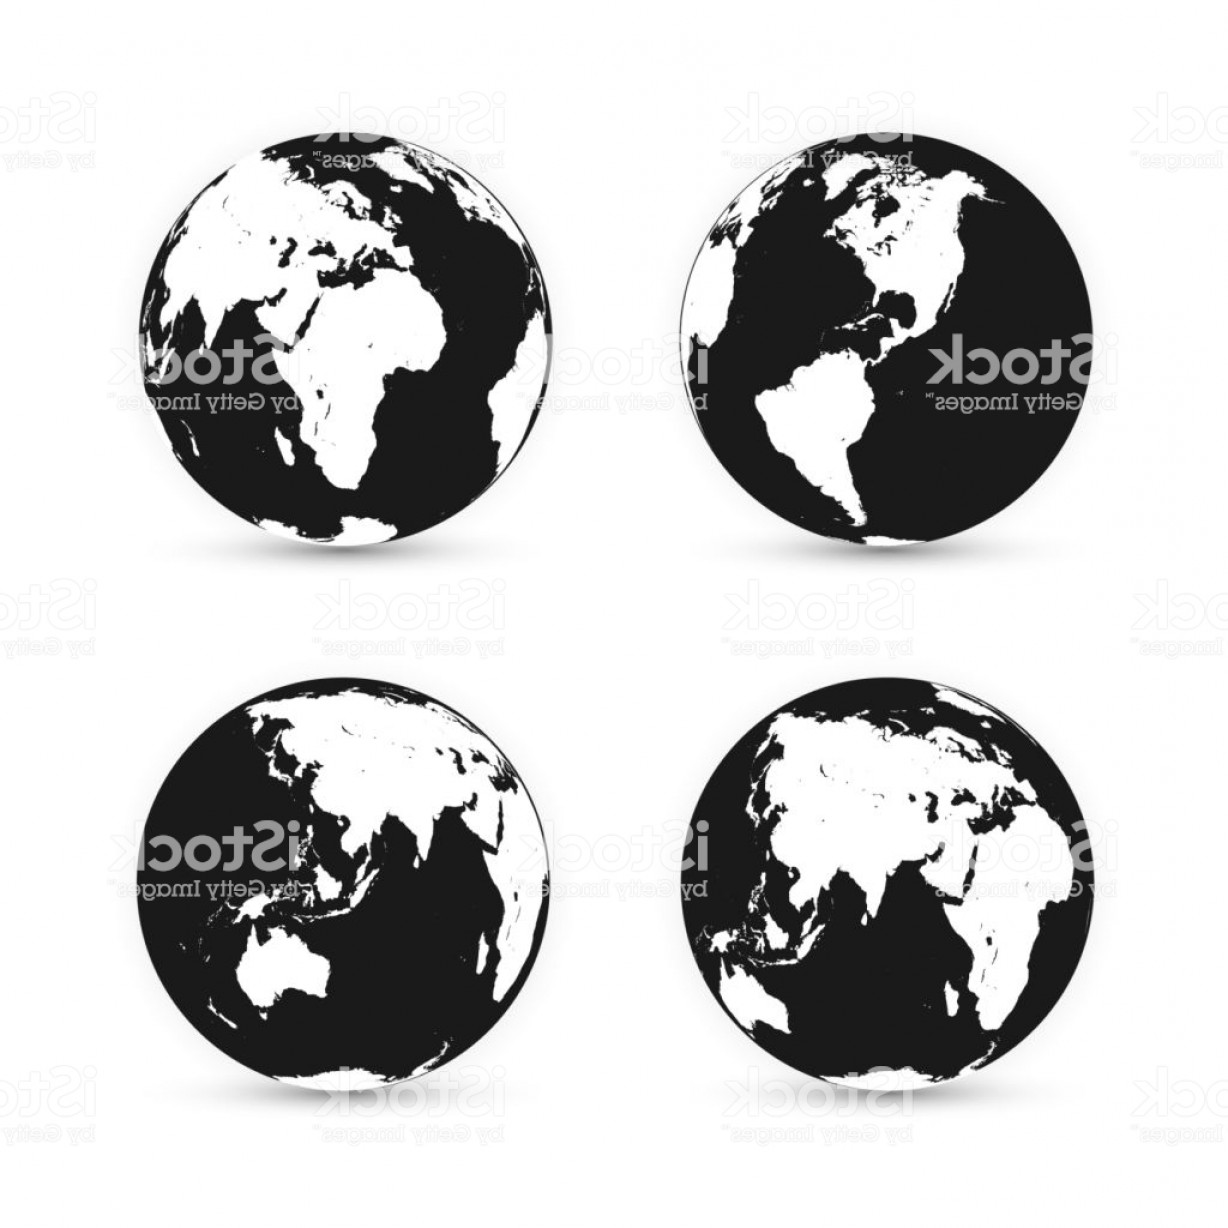 One Color Simple Vector Globe: Earth Globe World Map Set Planet With Continents Vector Illustration Gm